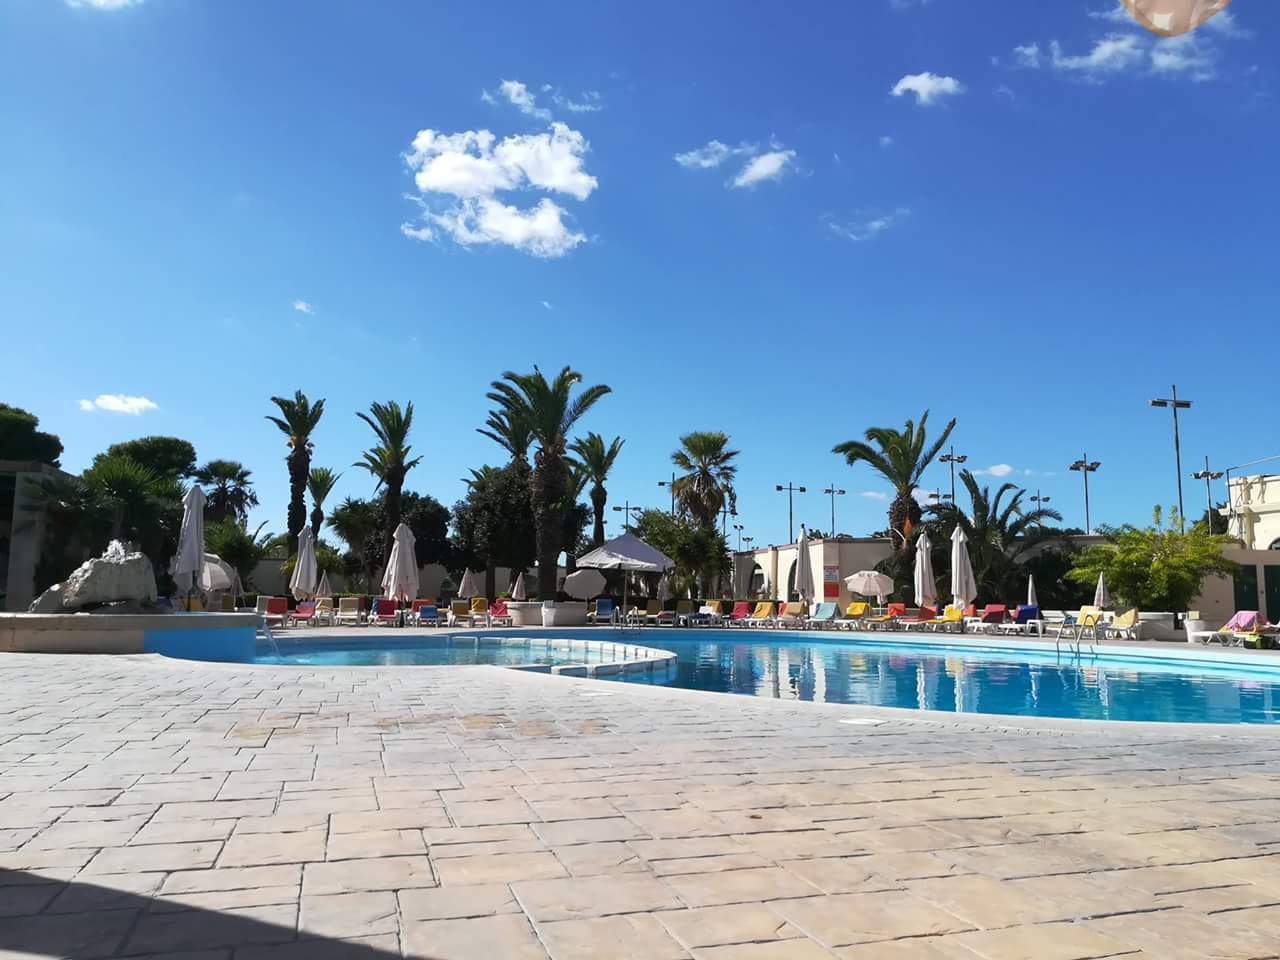 Pool area at Marsa Club open to all players + friends & family